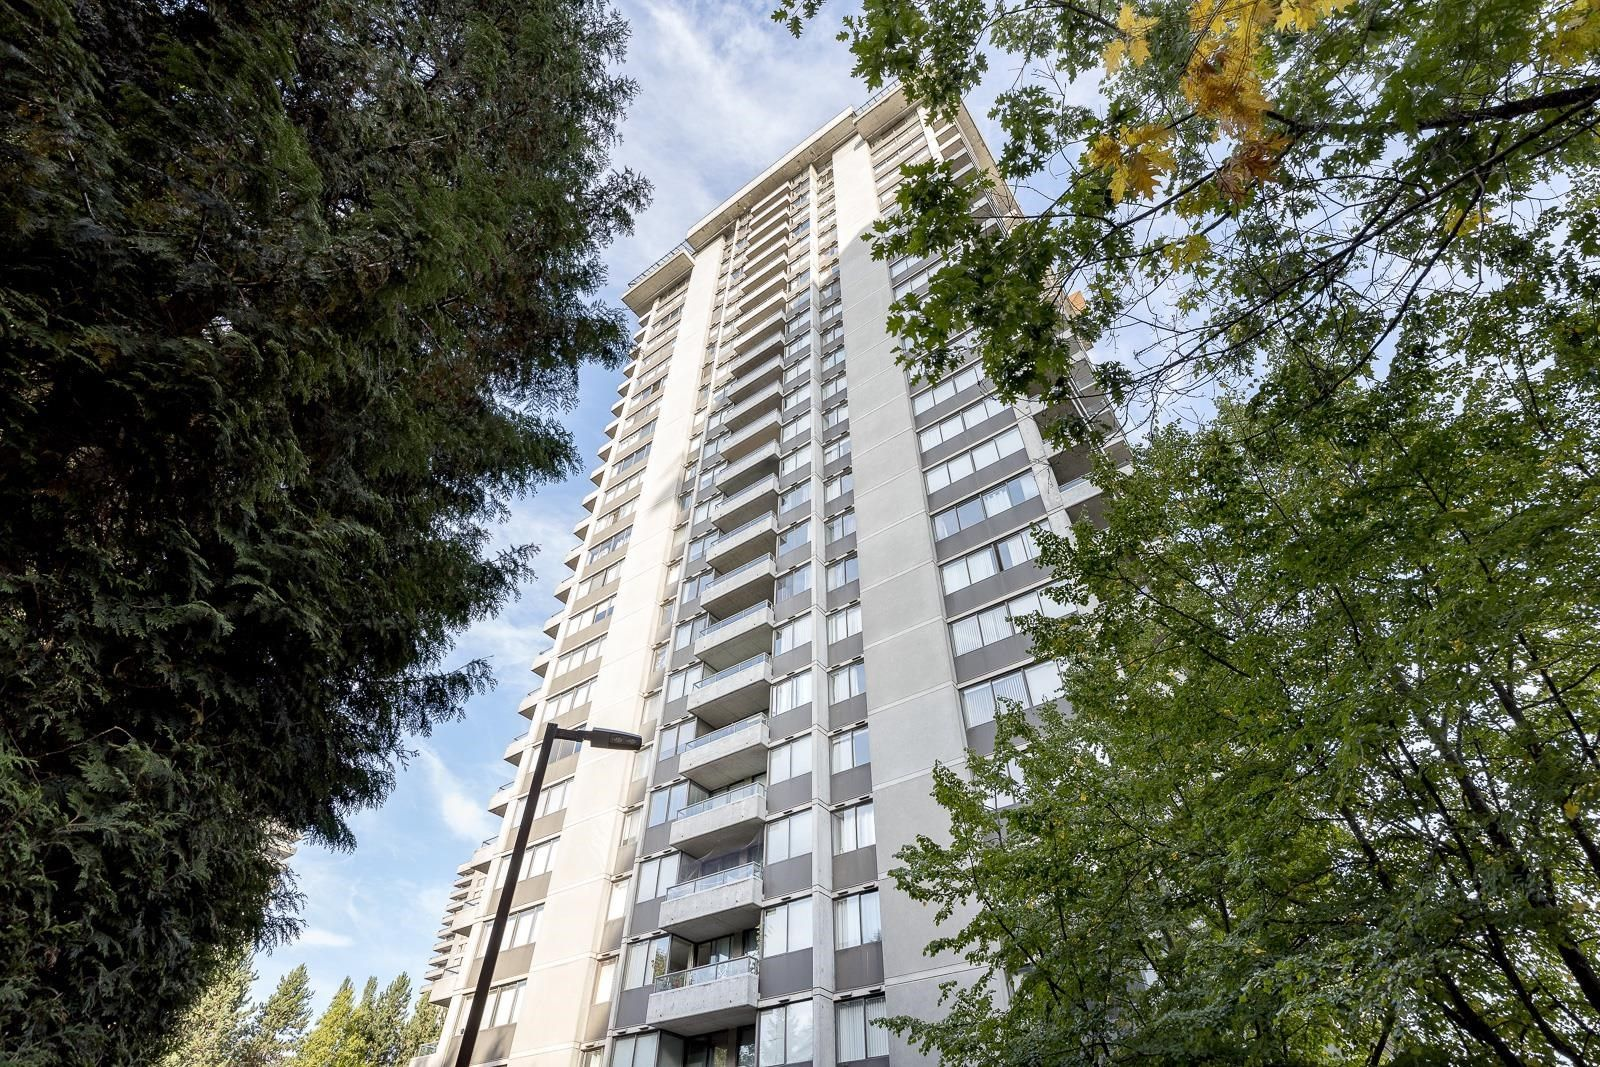 """Main Photo: 1903 3970 CARRIGAN Court in Burnaby: Government Road Condo for sale in """"THE HARRINGTON"""" (Burnaby North)  : MLS®# R2620746"""